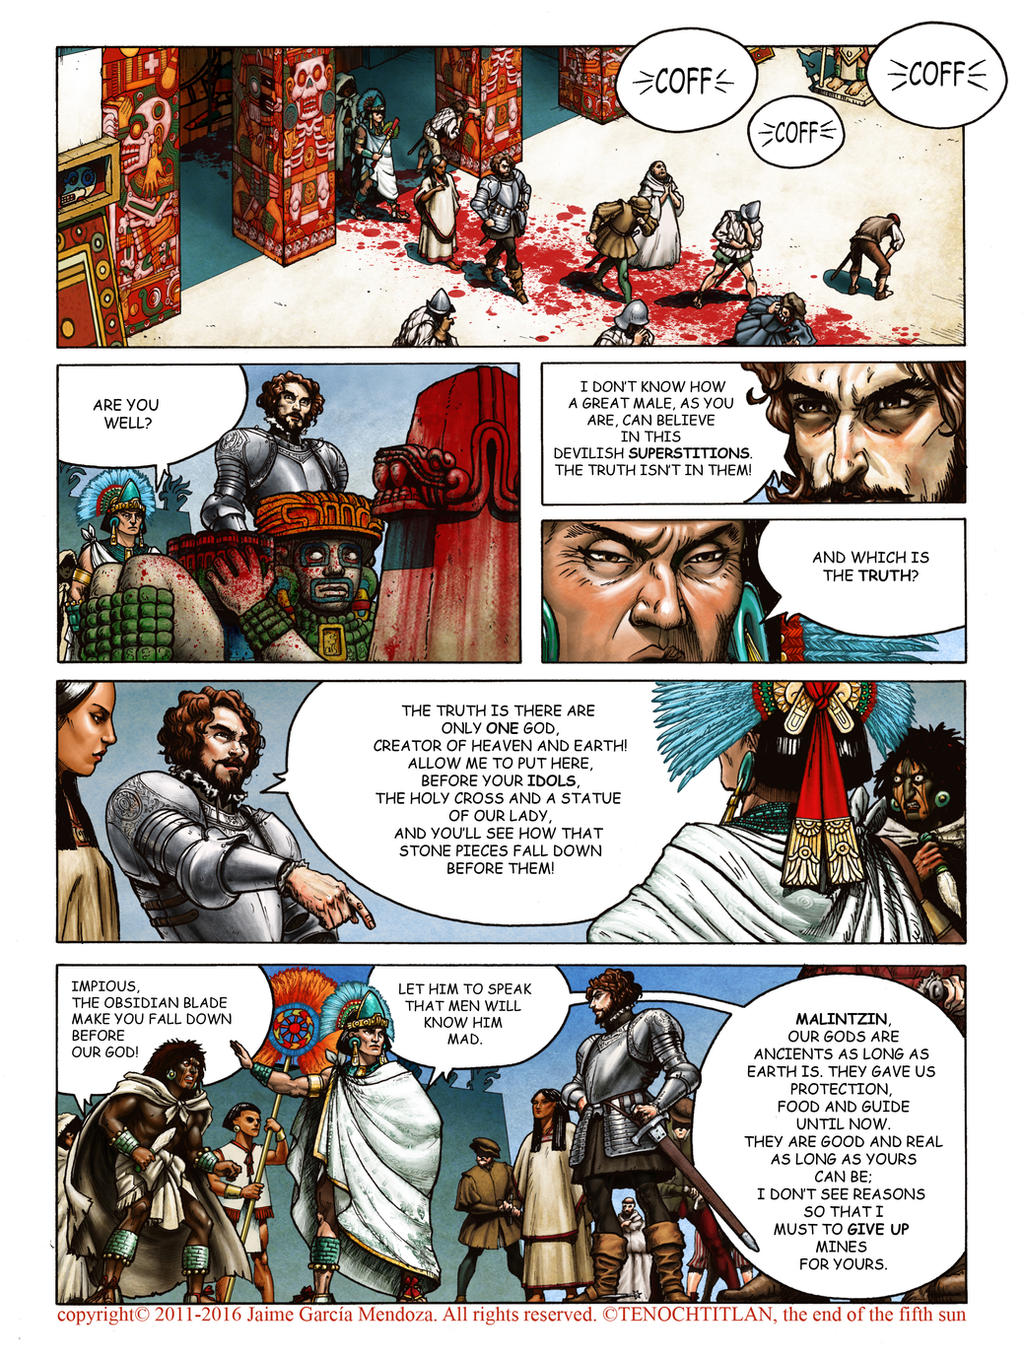 Tenochtitlan, chapter VI, page 27 by Jaime-Gmad